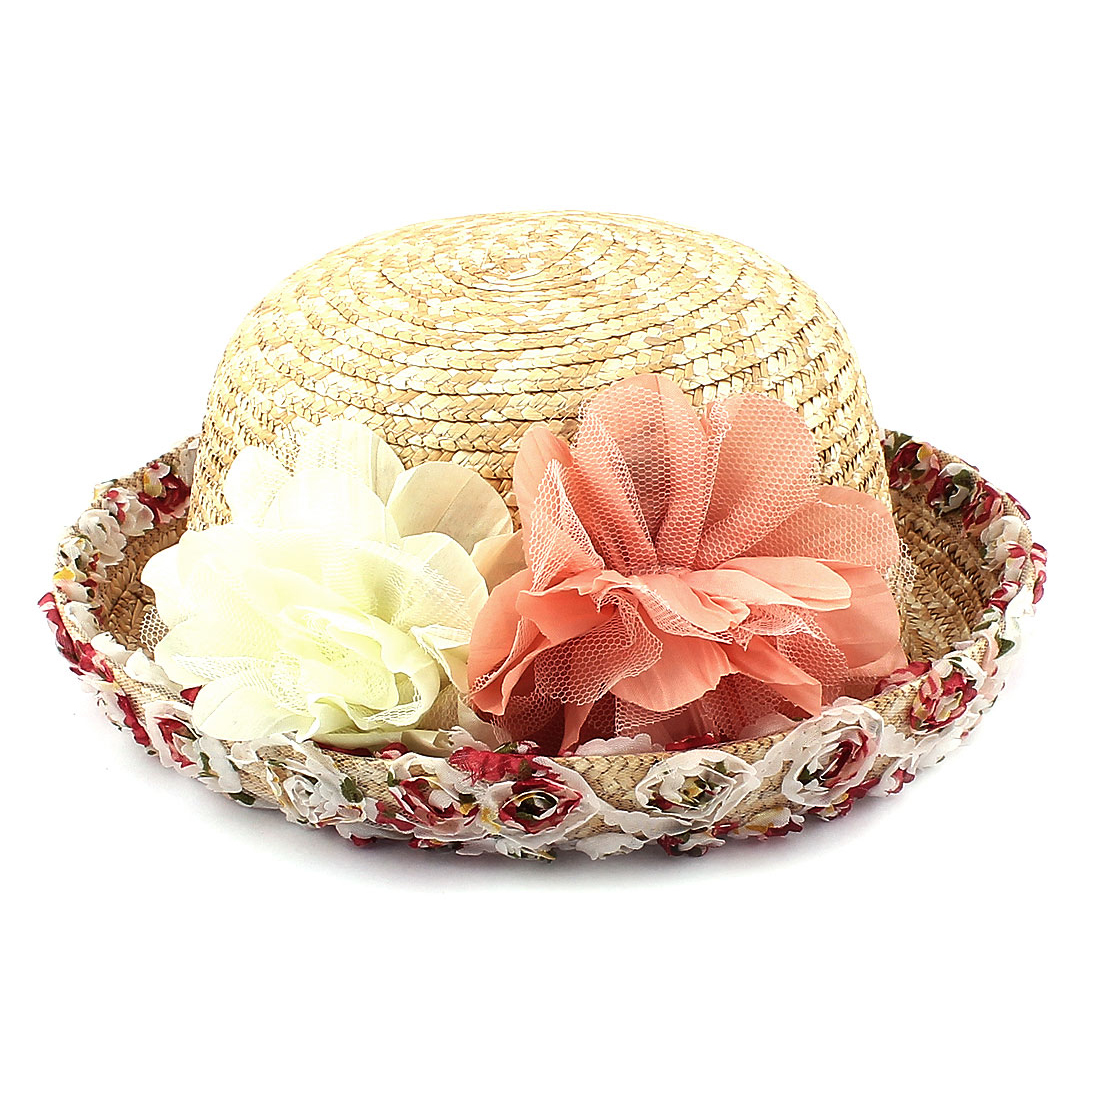 Women Beach Holiday Flower Decor Roll Up Brim Braided Straw Sun Hat Cap Beige 56cm